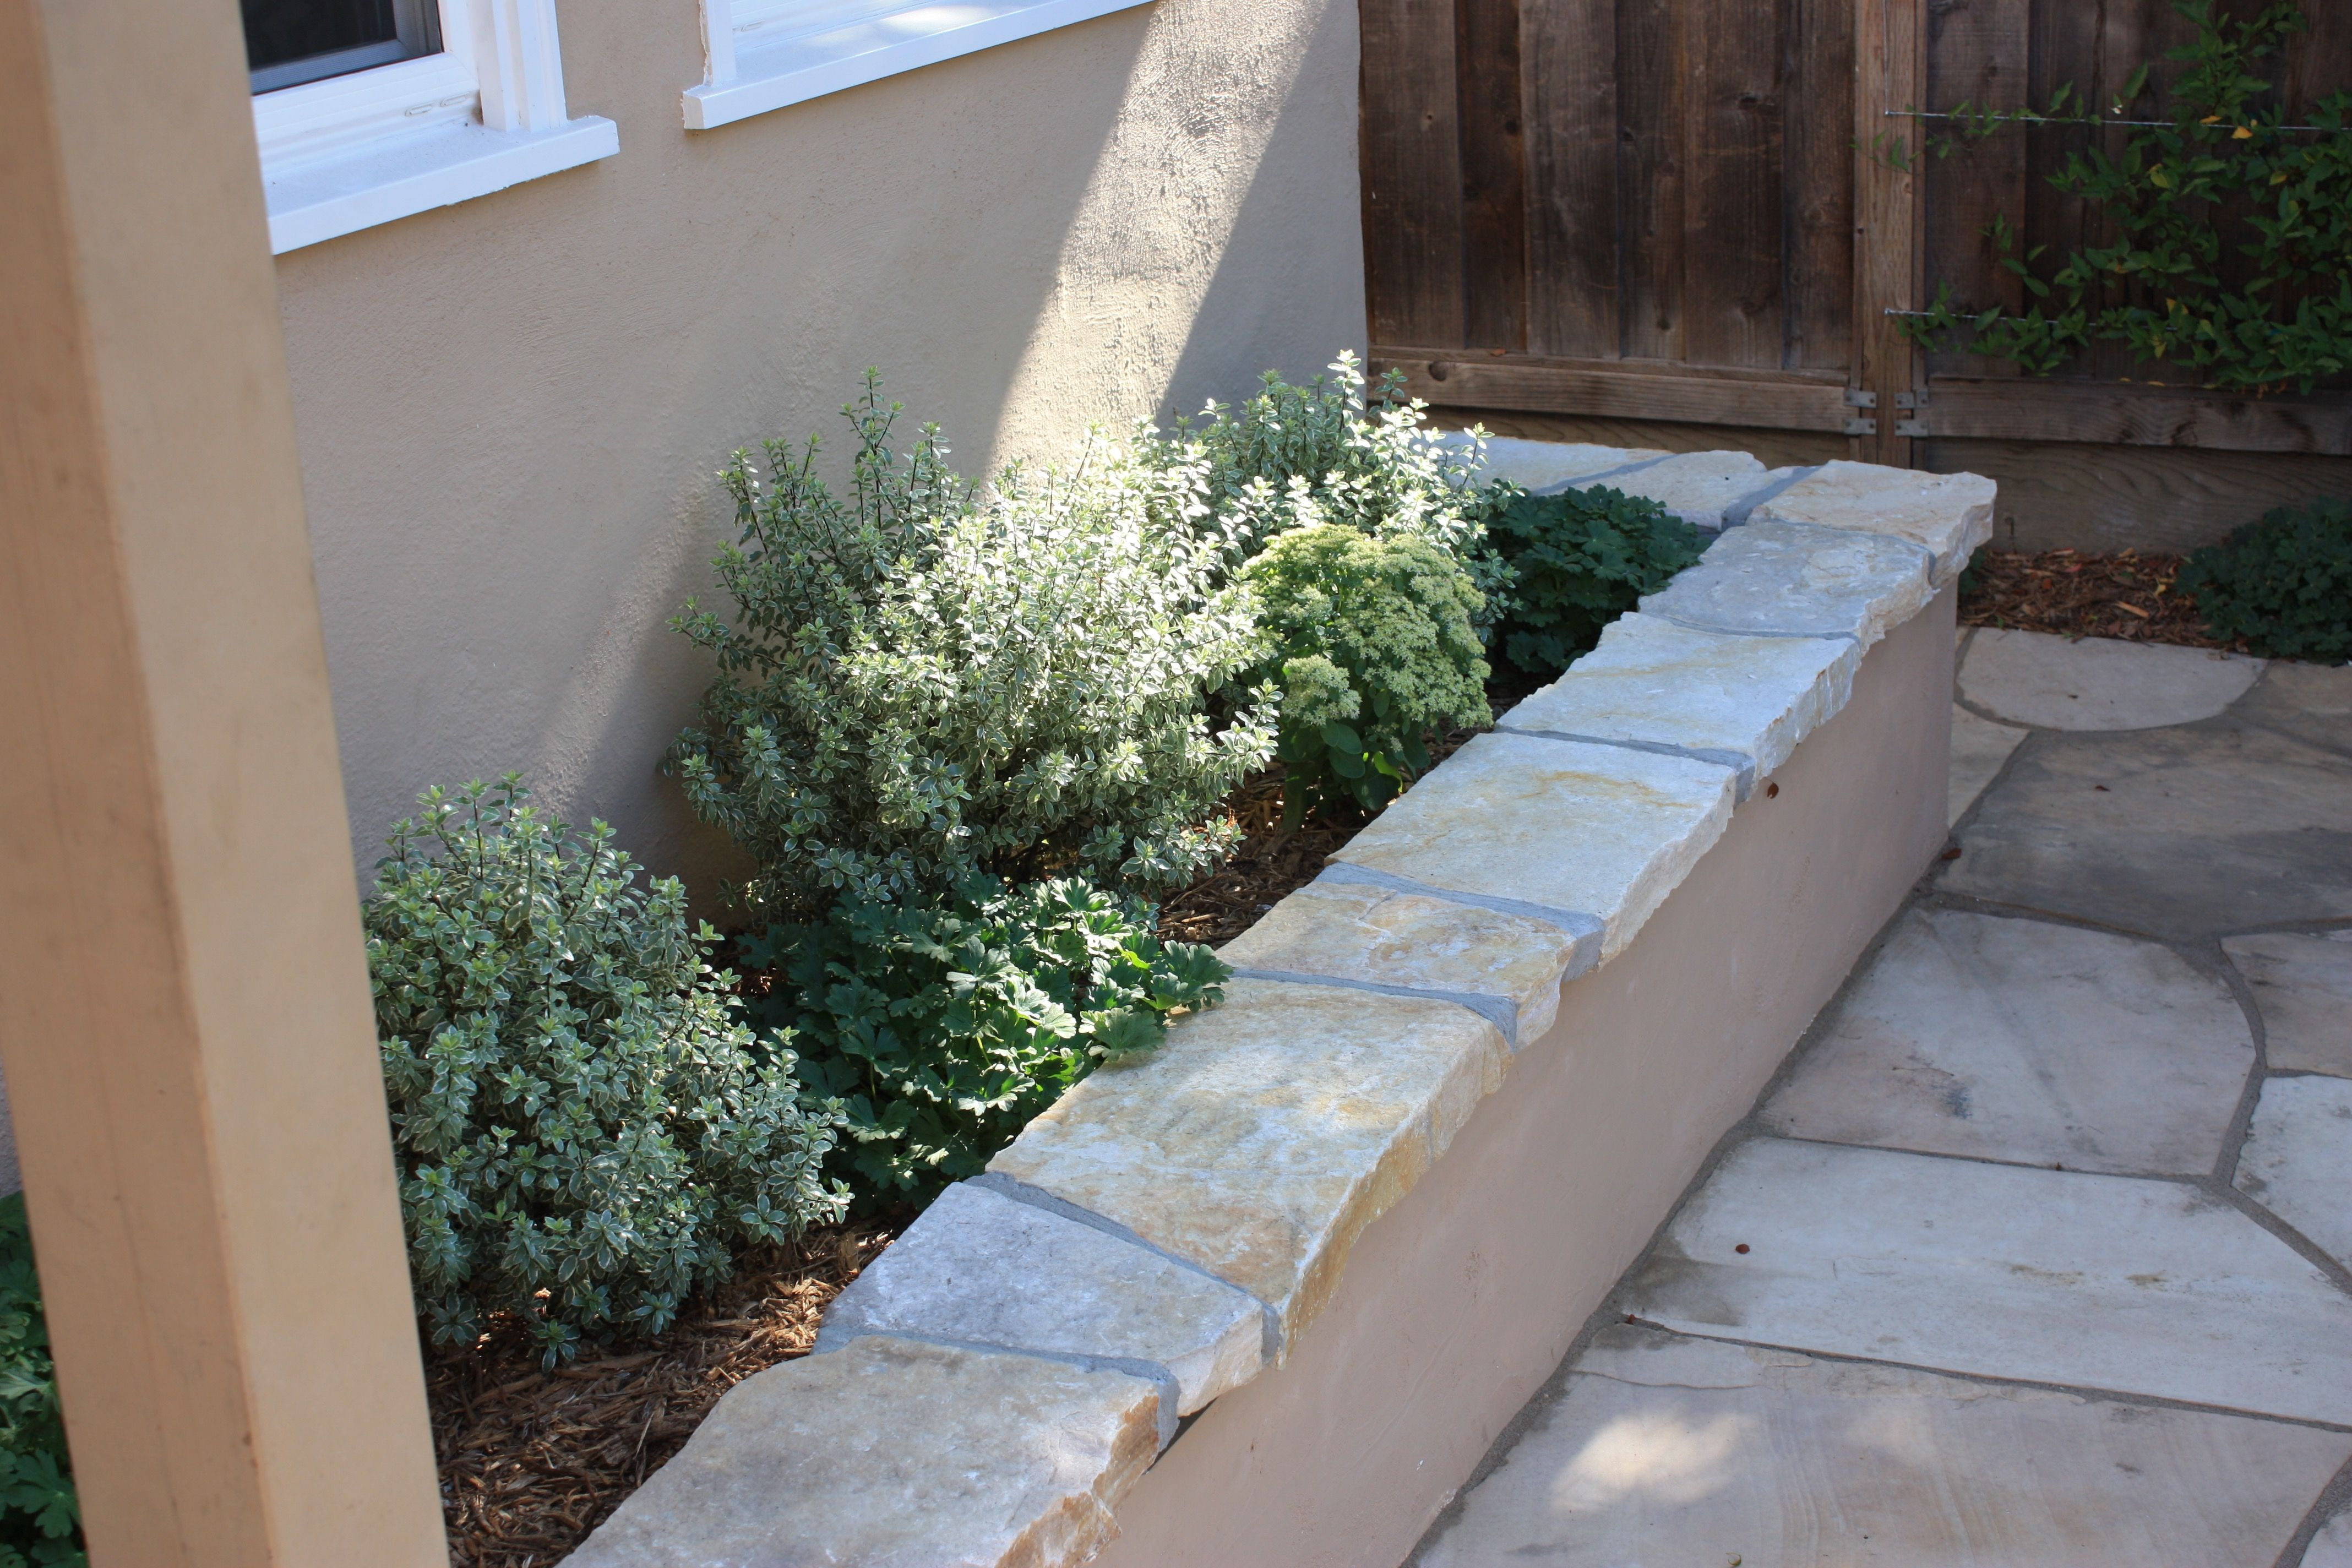 Pin By Erin B On Front Yard In 2020 Stone Retaining Wall Wall Seating Raised Planter Beds